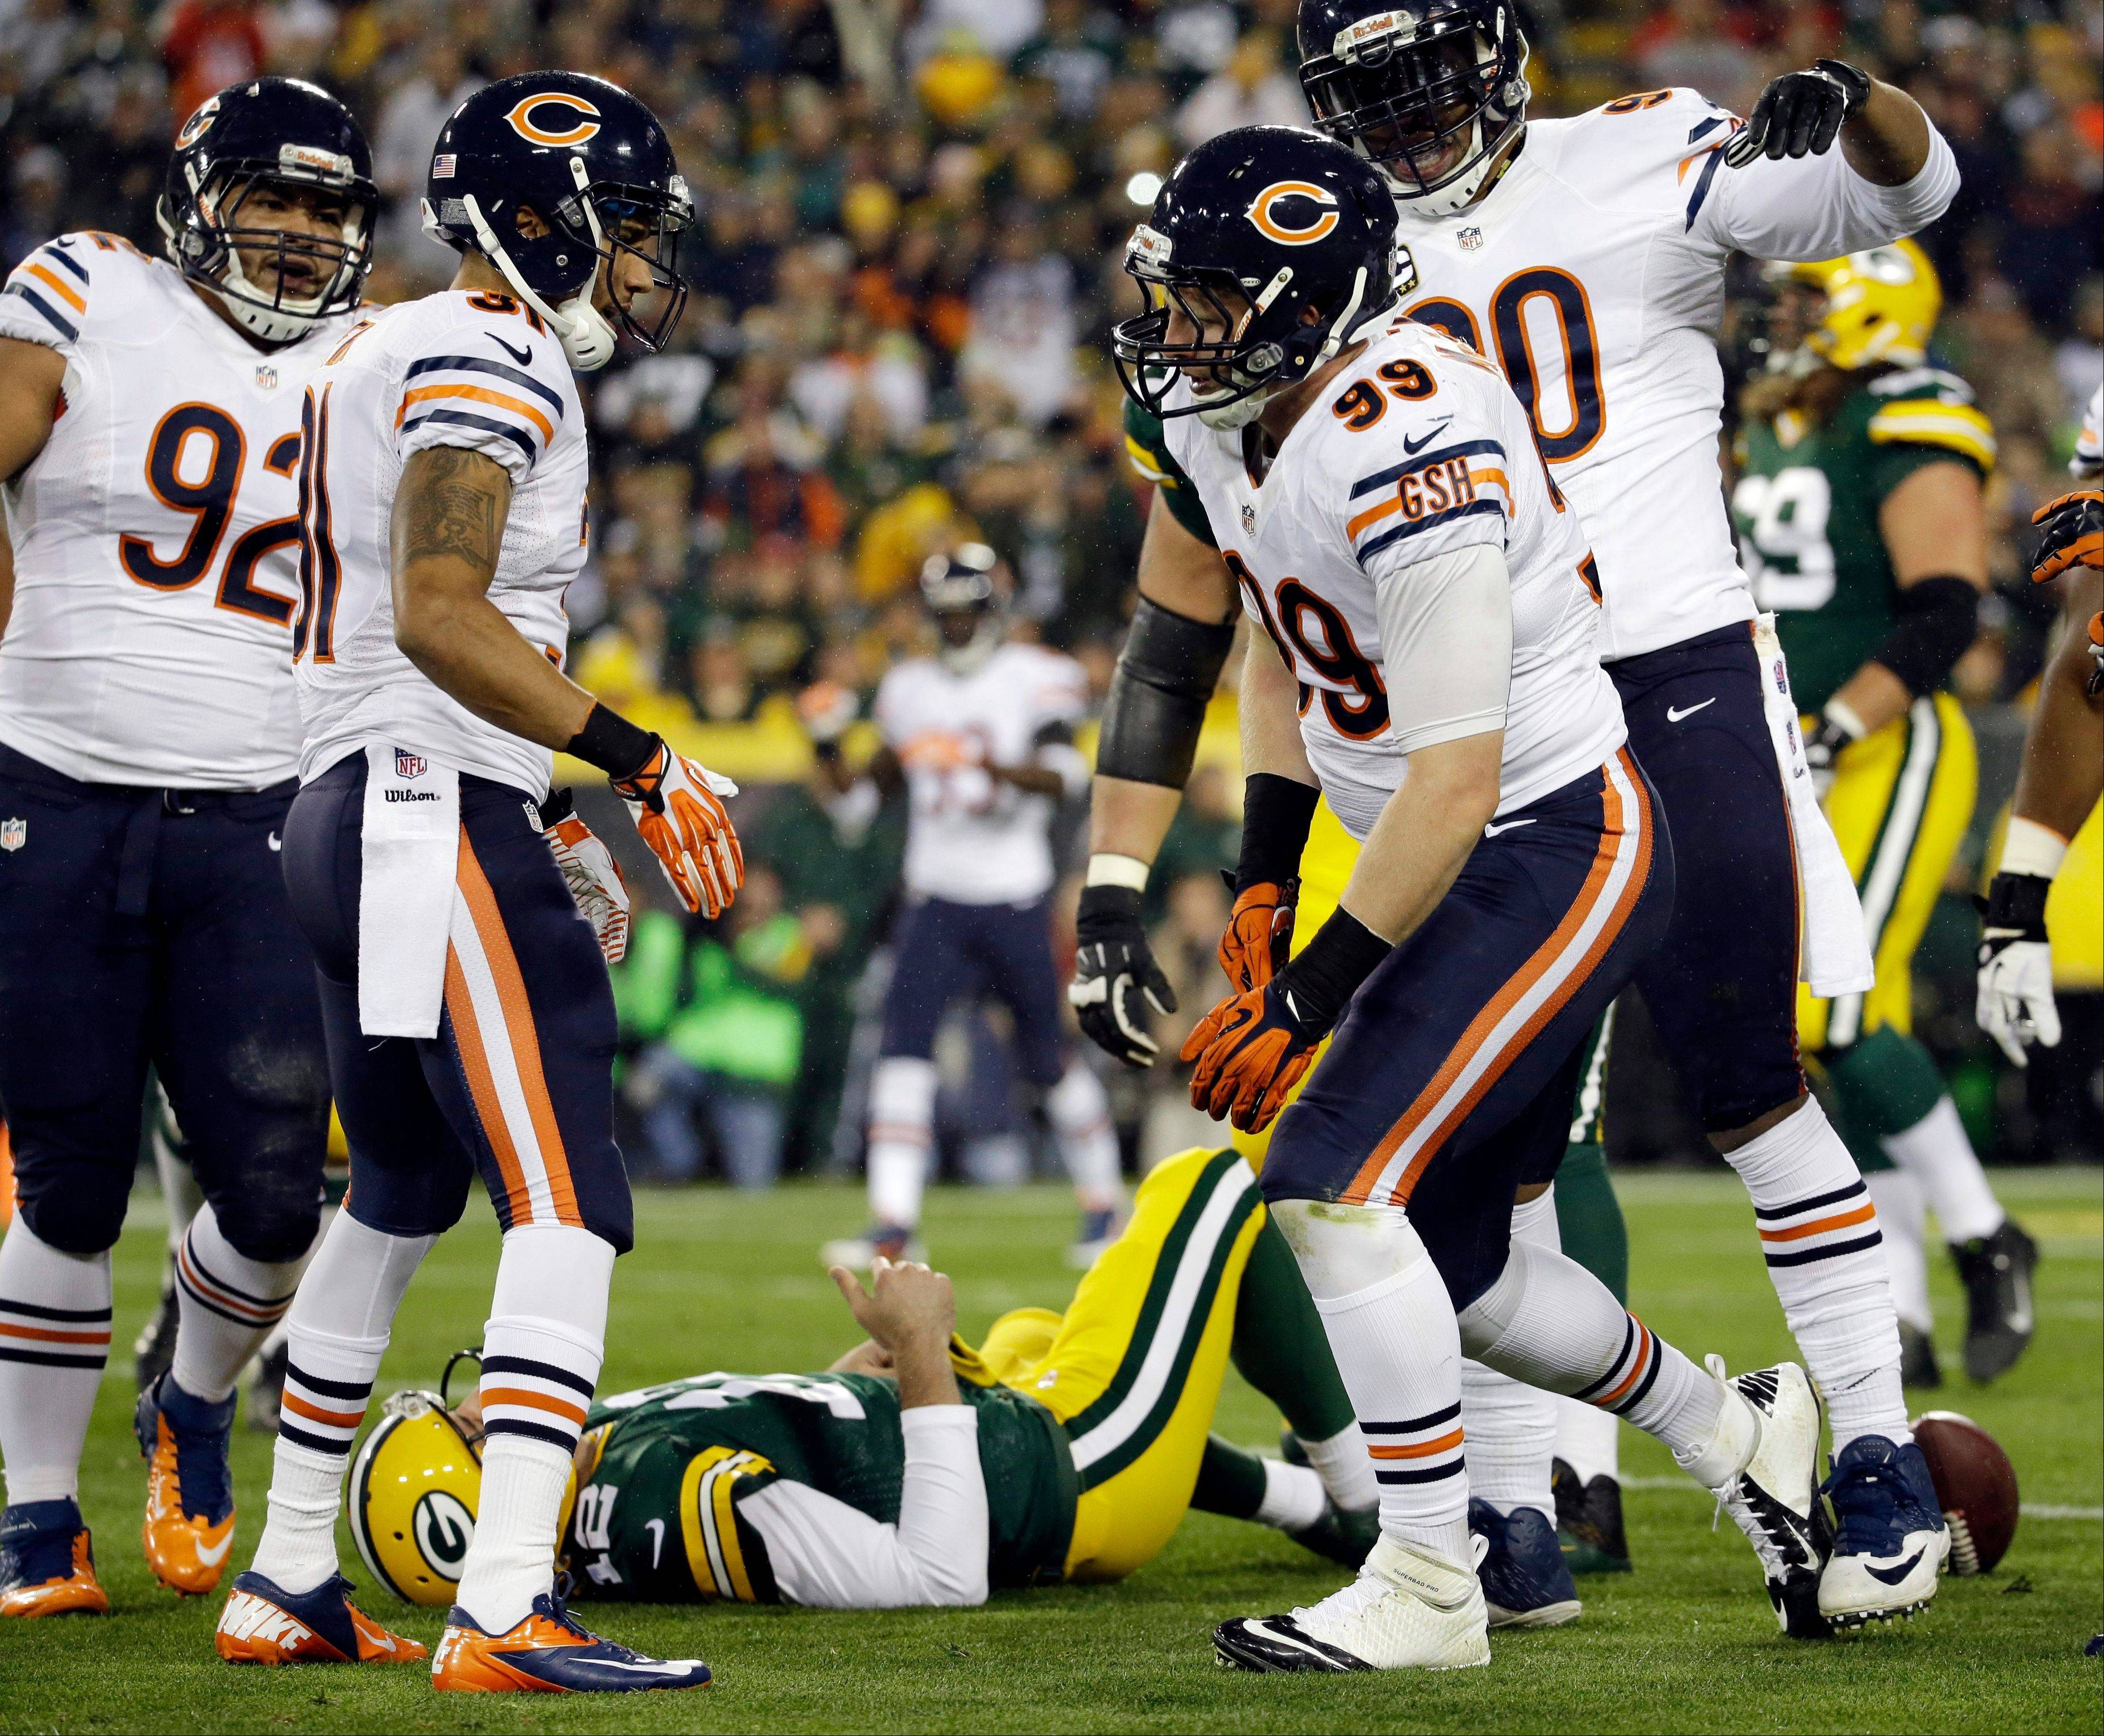 Green Bay Packers quarterback Aaron Rodgers lays on the ground Monday after being sacked by the Bears' Shea McClellin.